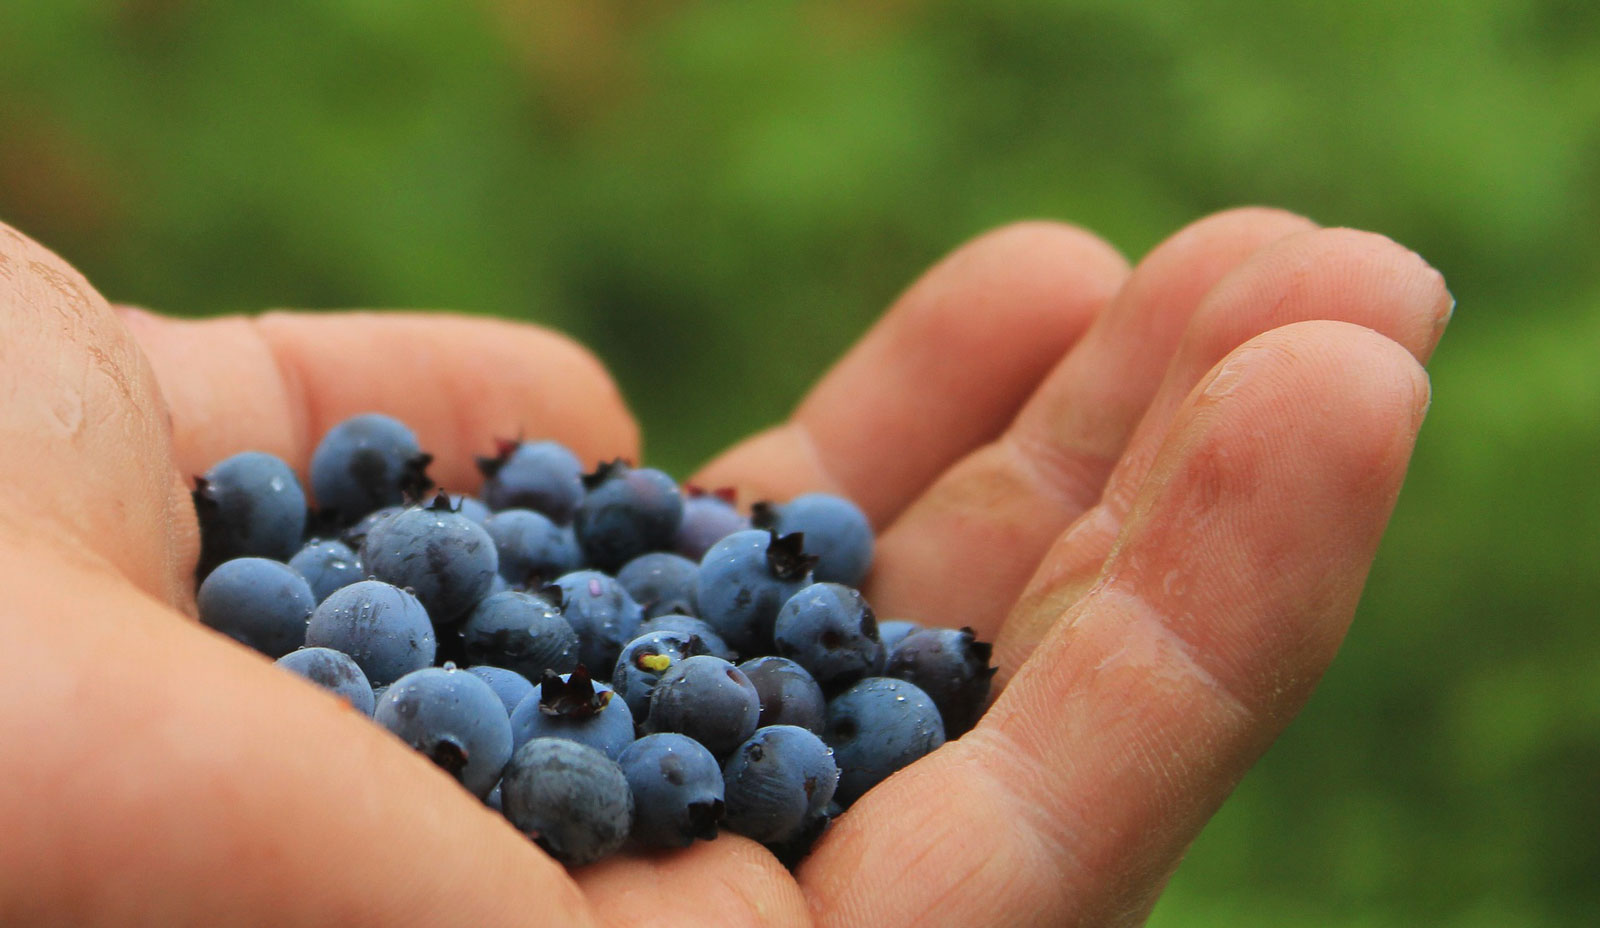 Use a hiking sock as a container to forage for berries